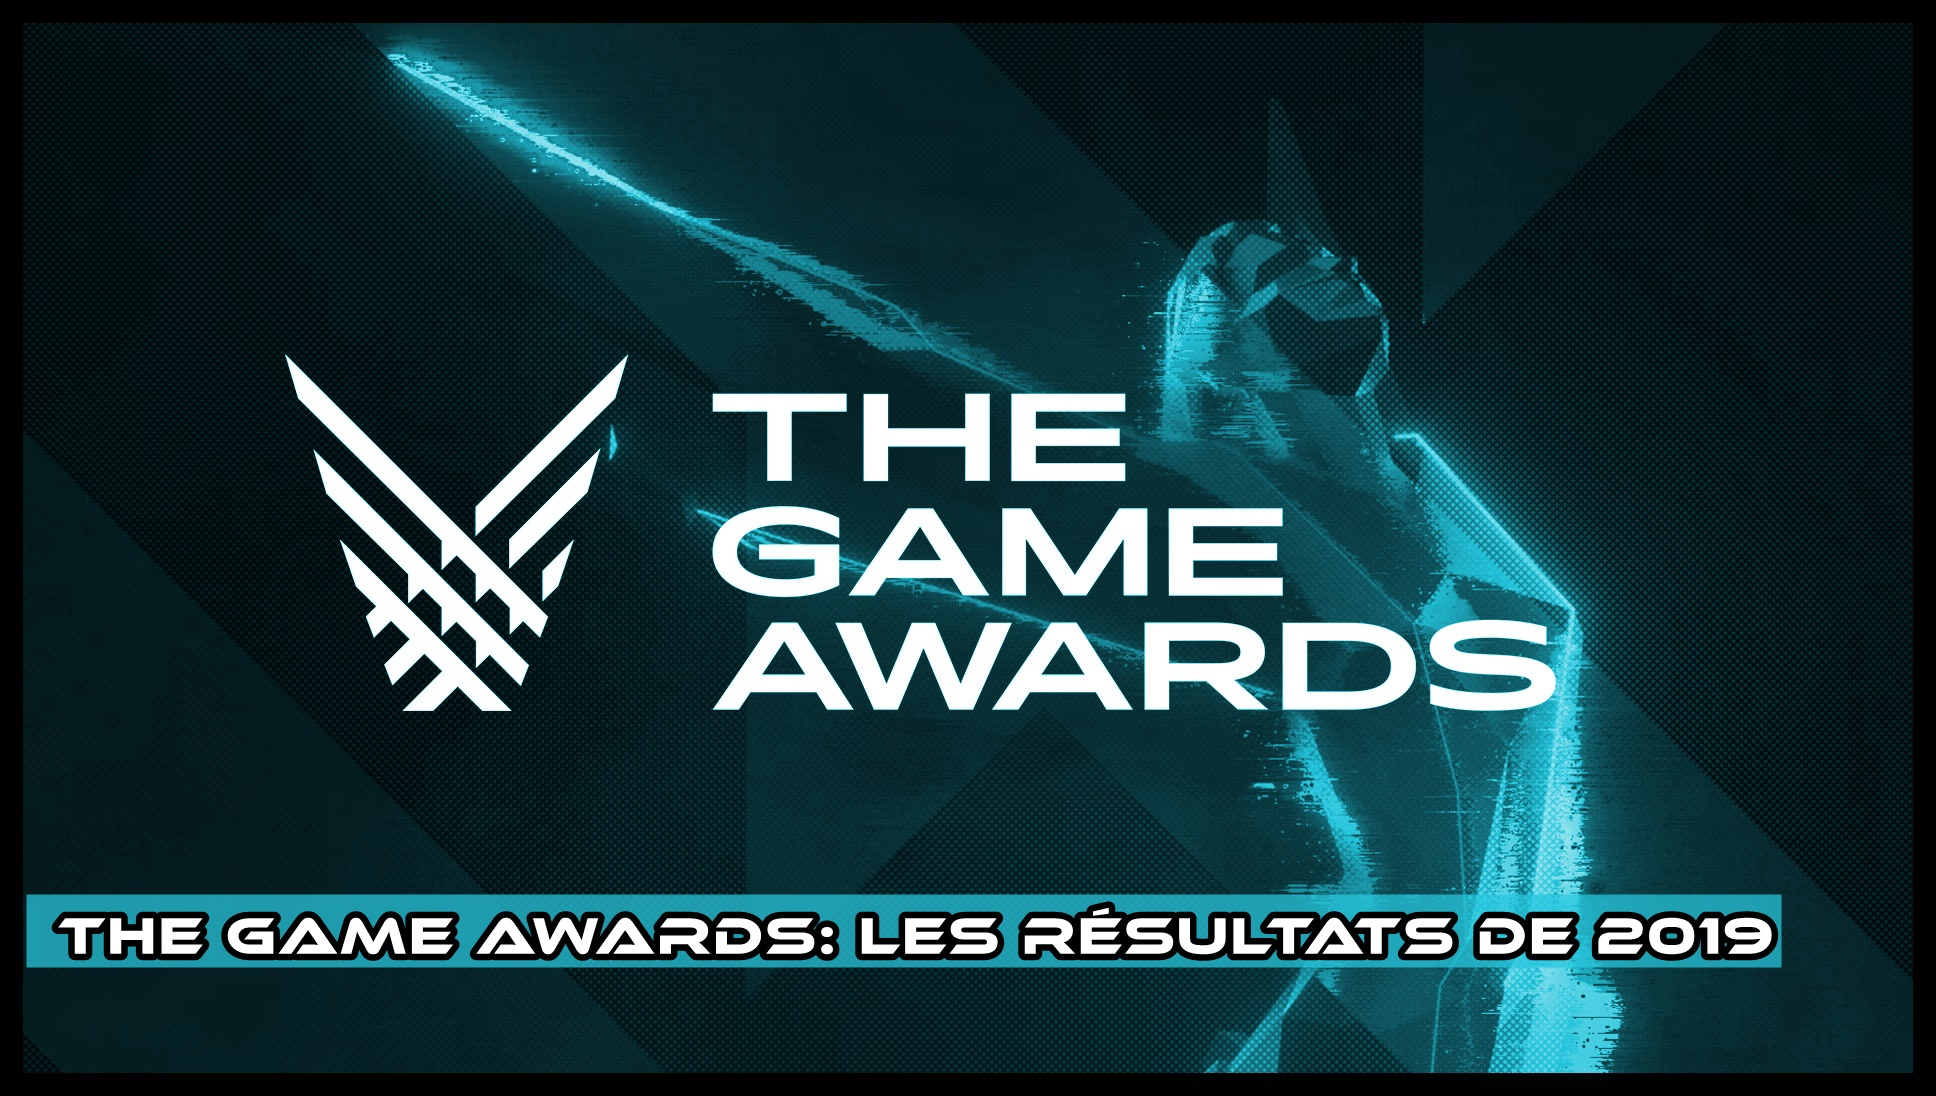 The Game Awards: les résultats de 2019.